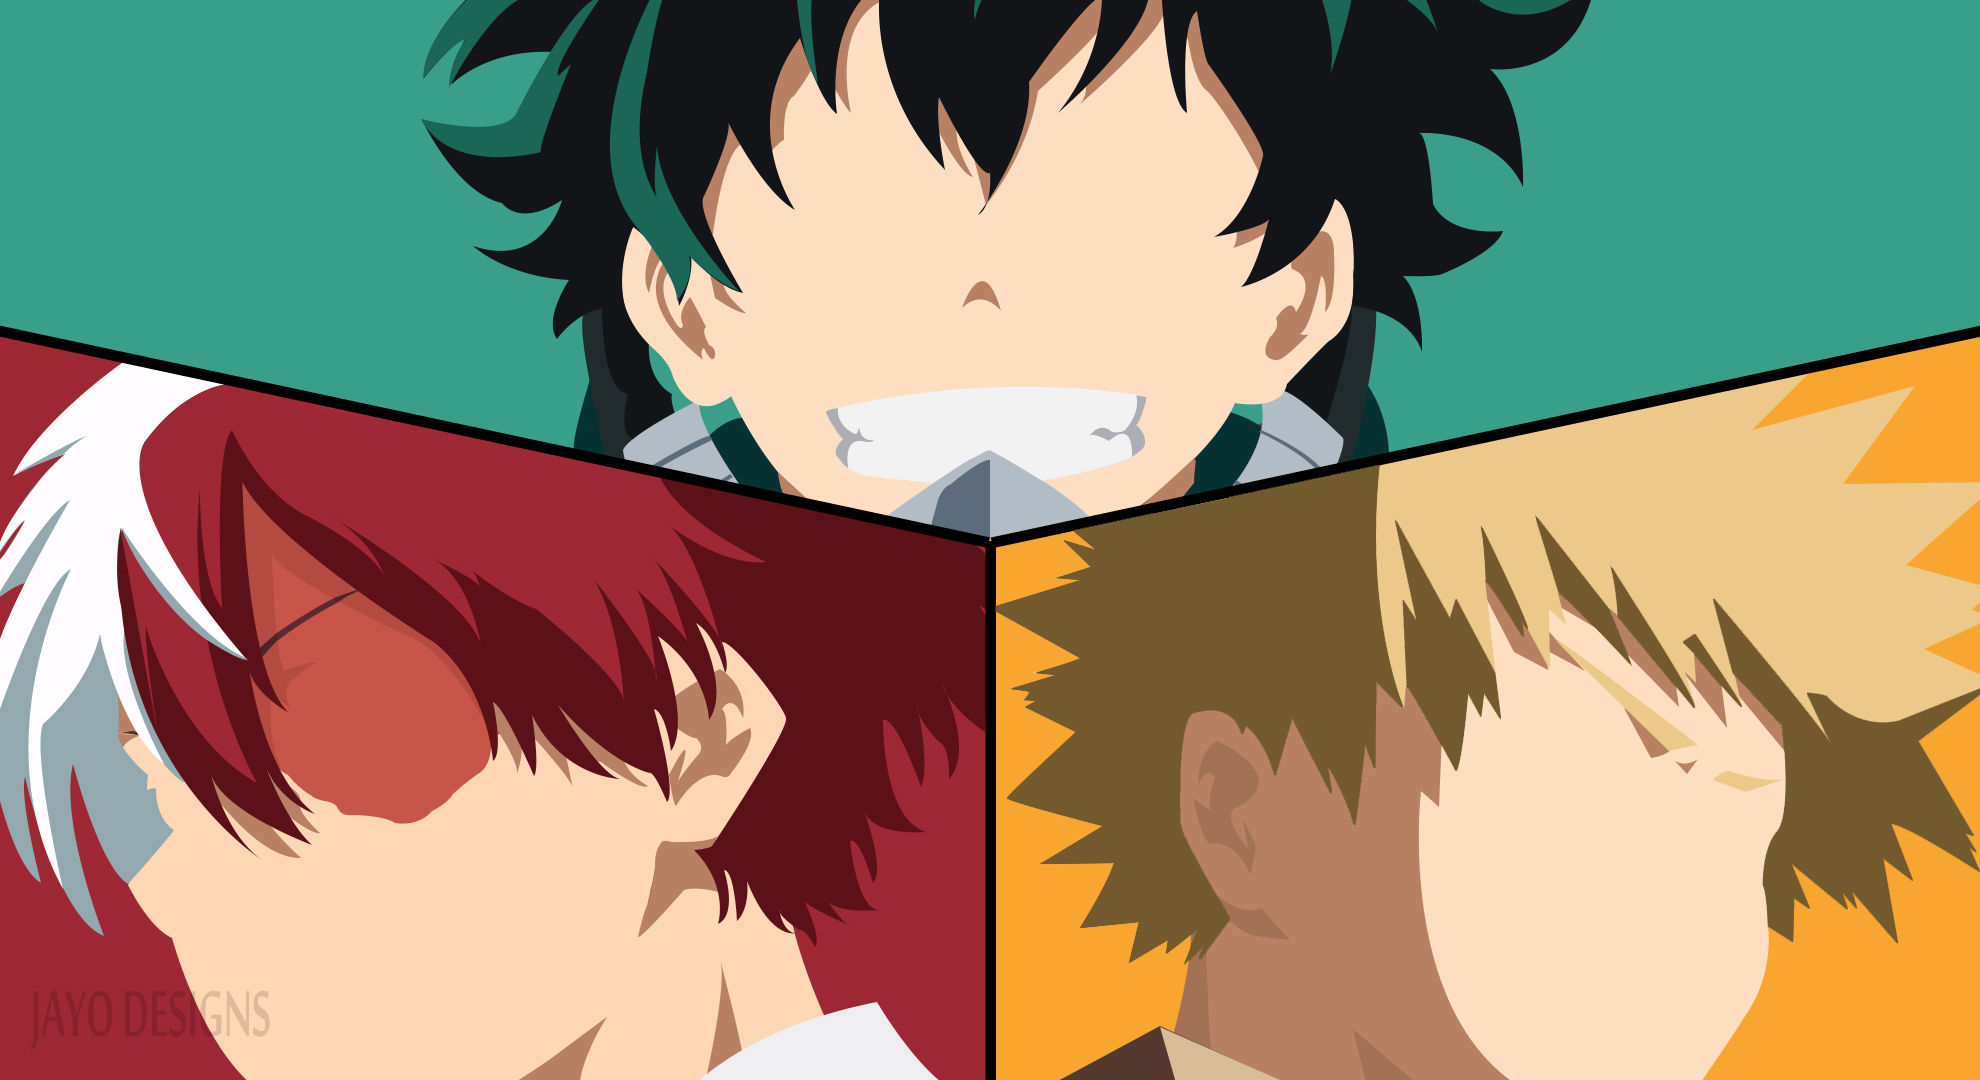 Deku Kacchan Todoroki Minimalist Hd Wallpaper Background Image